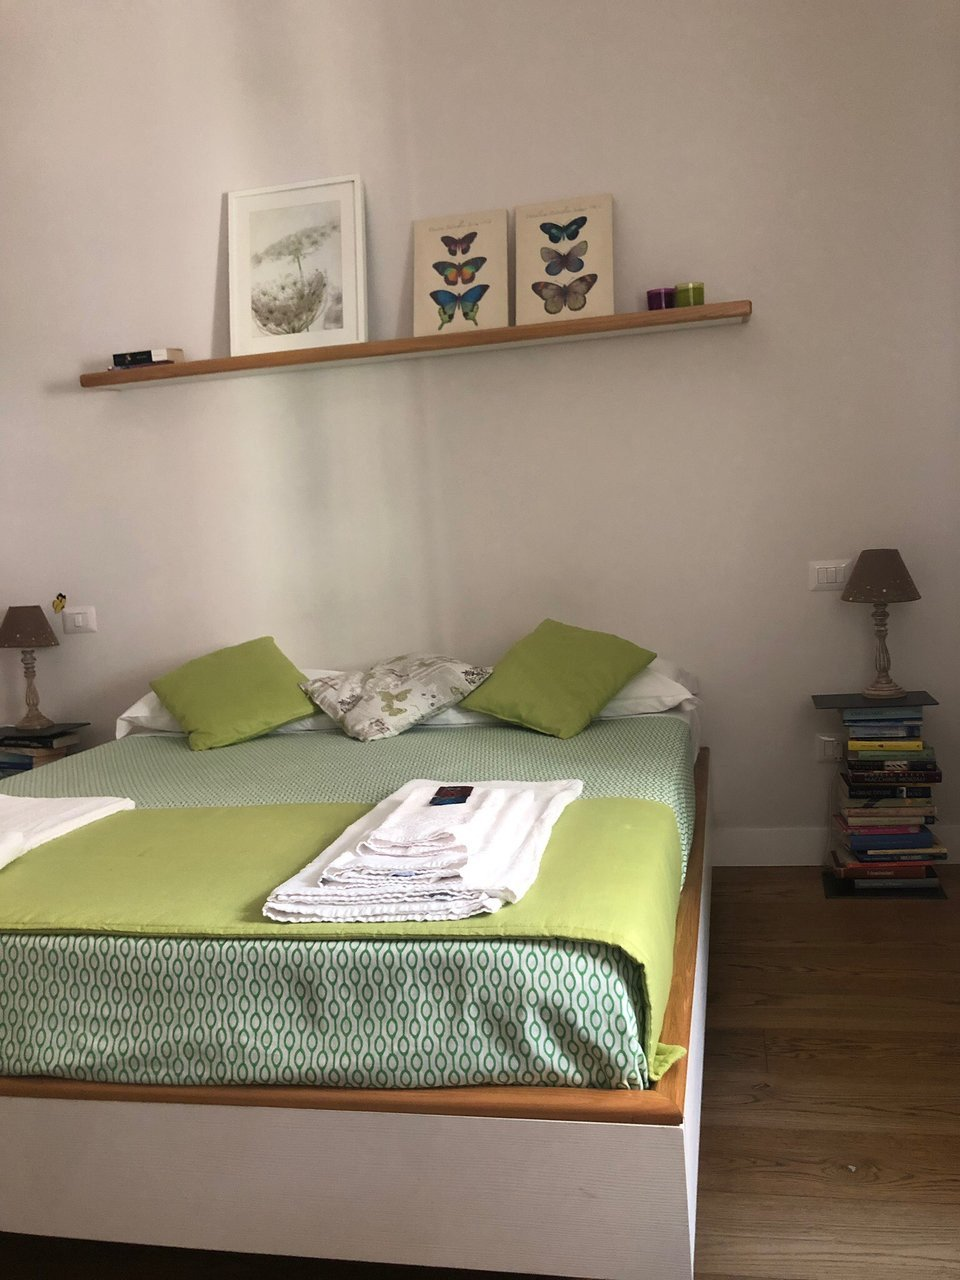 Luggage Rack for Bedroom Best Of B&b Domus Temporis Prices & Reviews Rome Italy